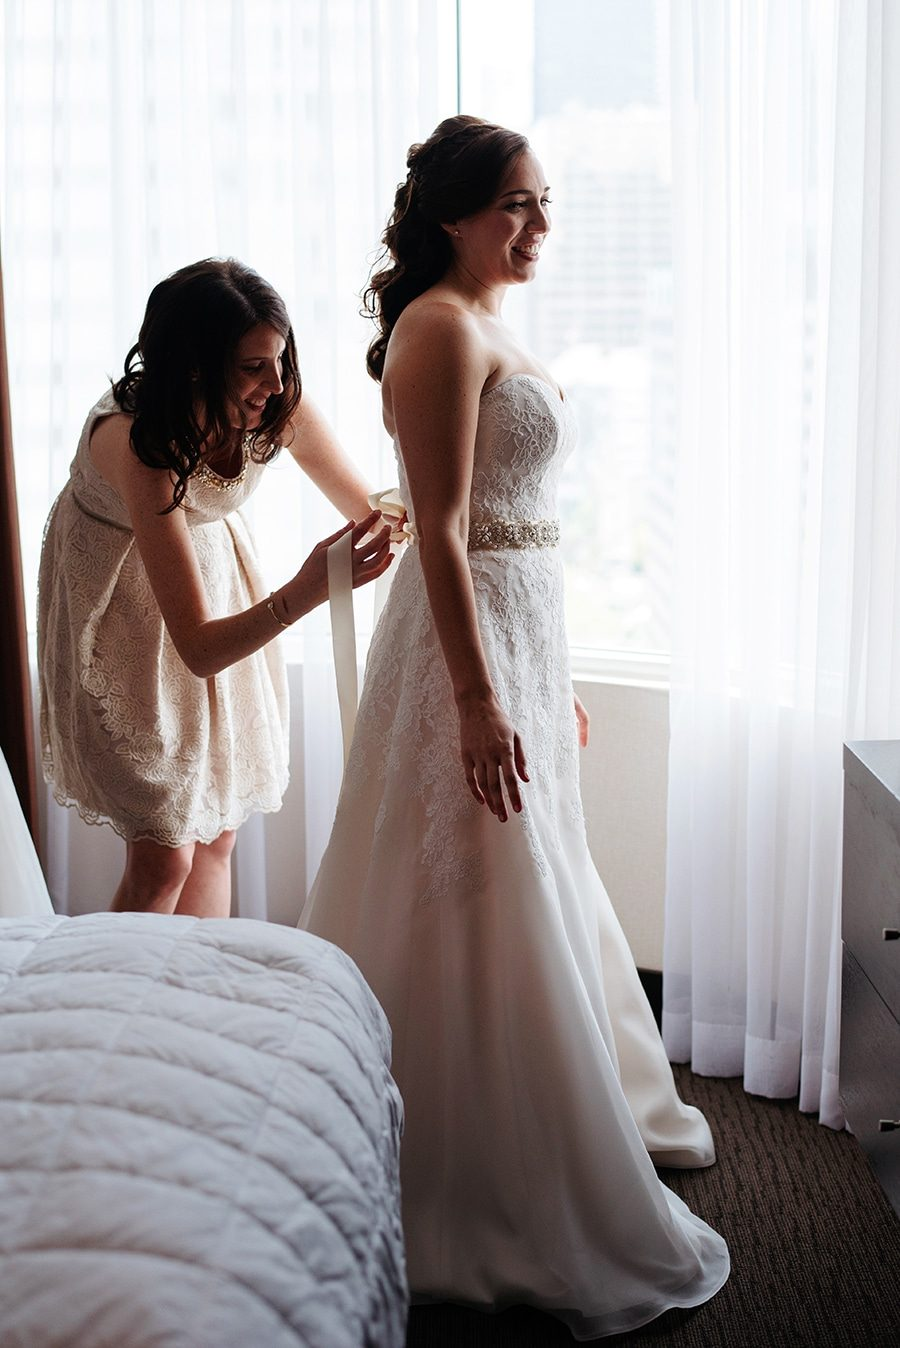 Bride getting help zipping up her dress